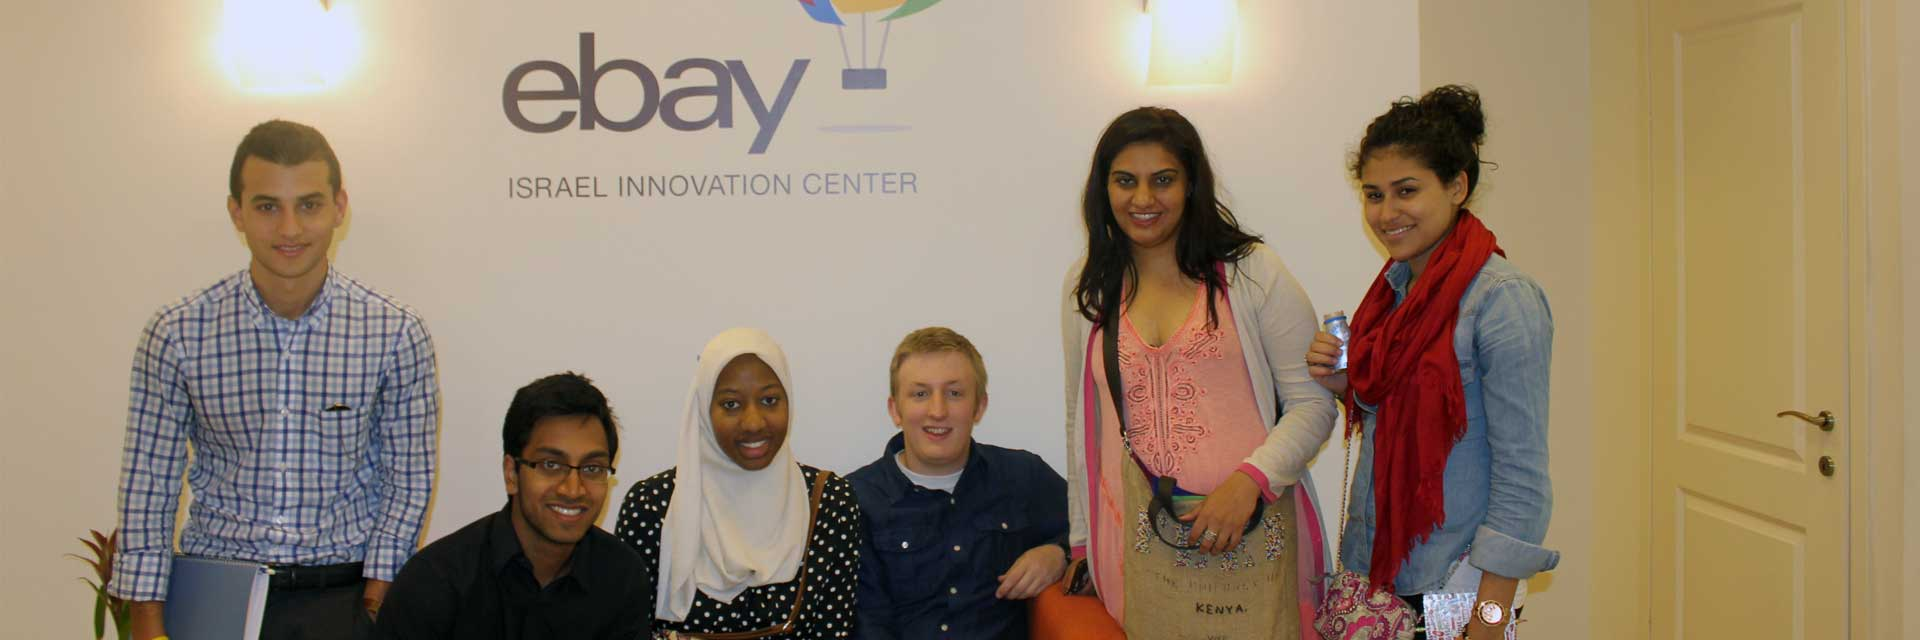 2013-Students-at-Ebay-in-Tel-Aviv-Israel